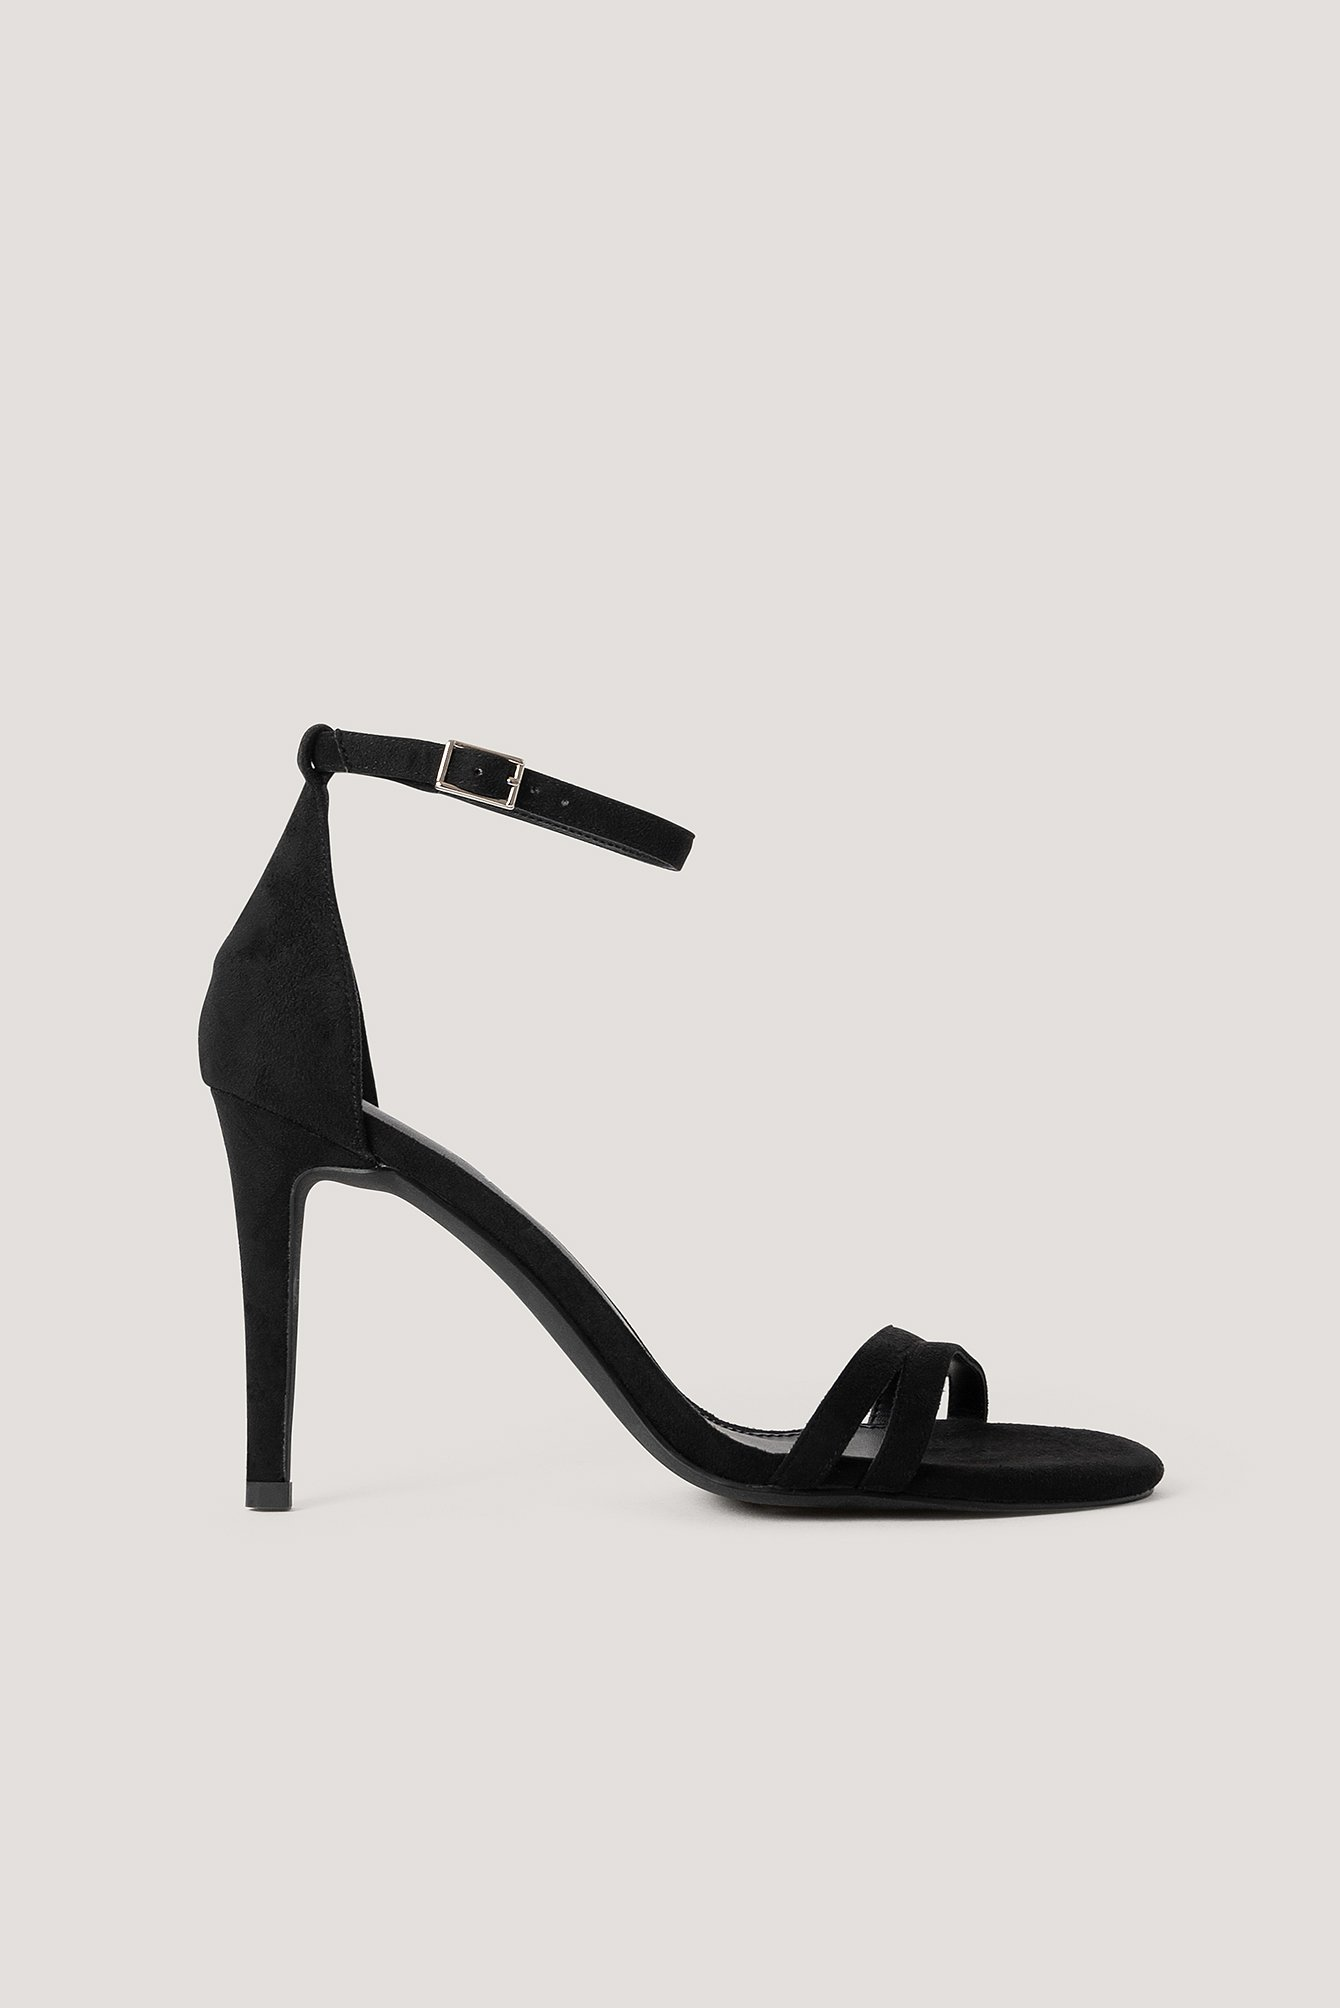 NA-KD Shoes High Heel Stiletto Sandals - Black